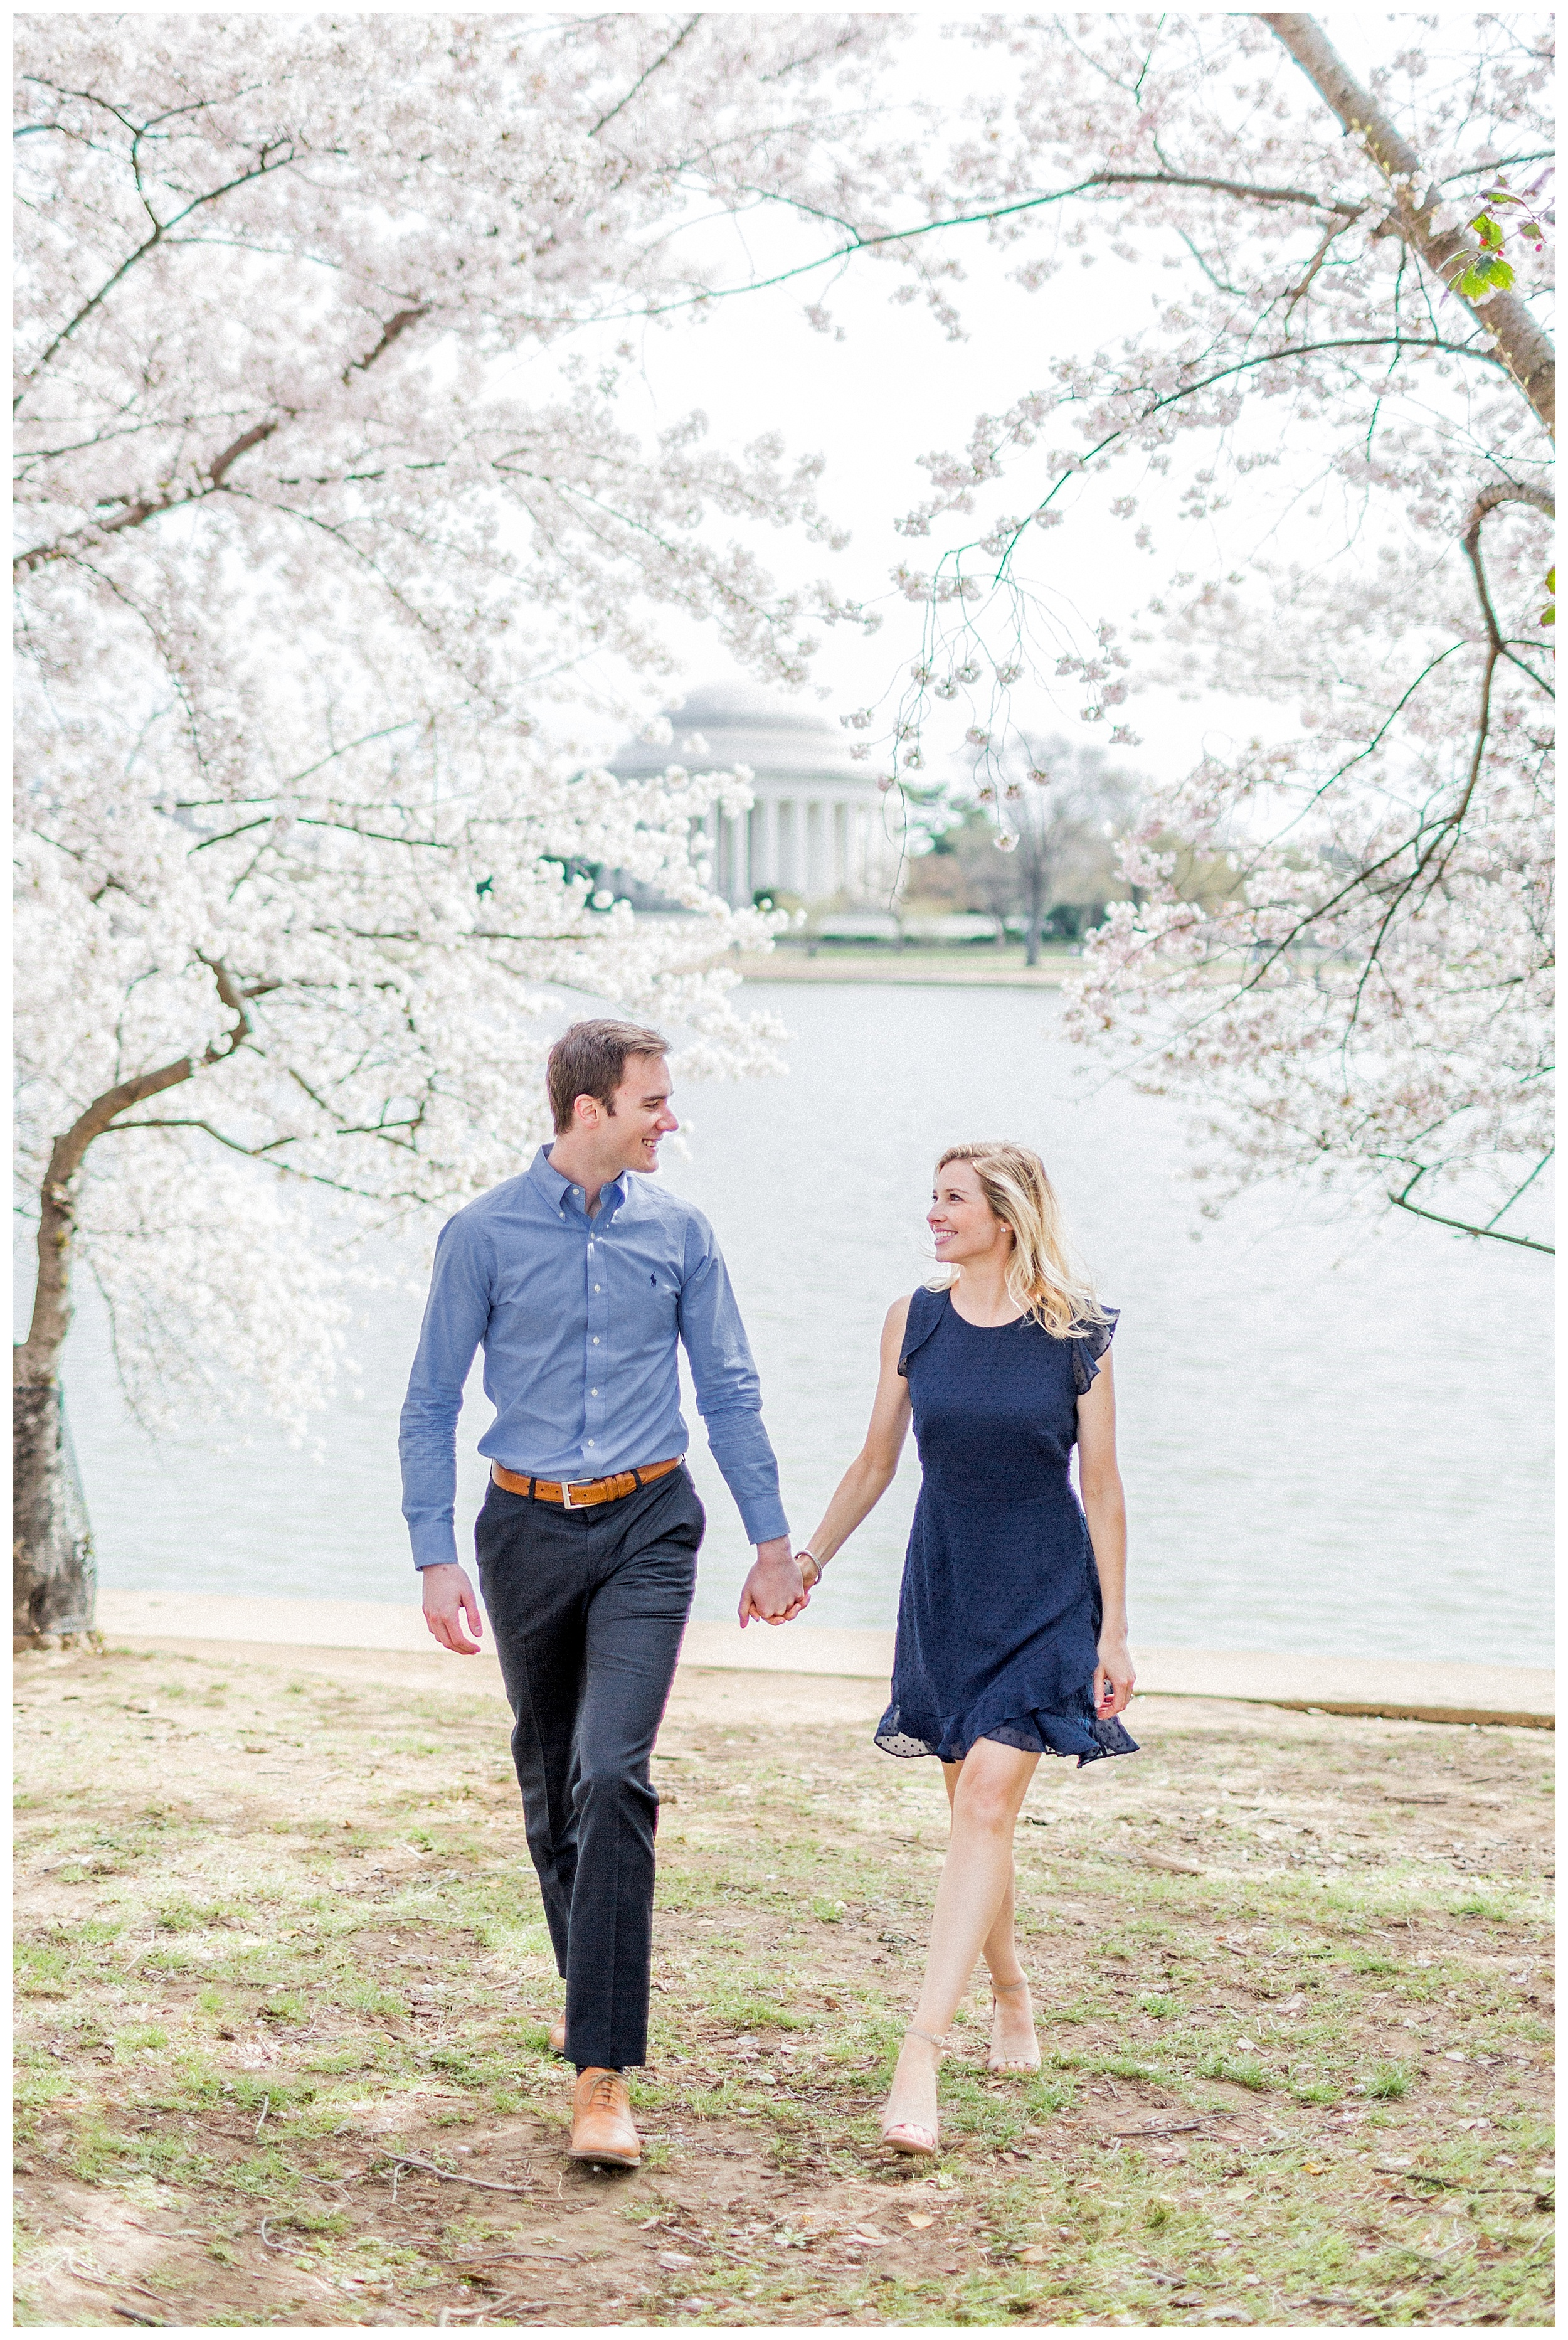 District of Columbia Cherry Blossom Engagement Session_0041.jpg